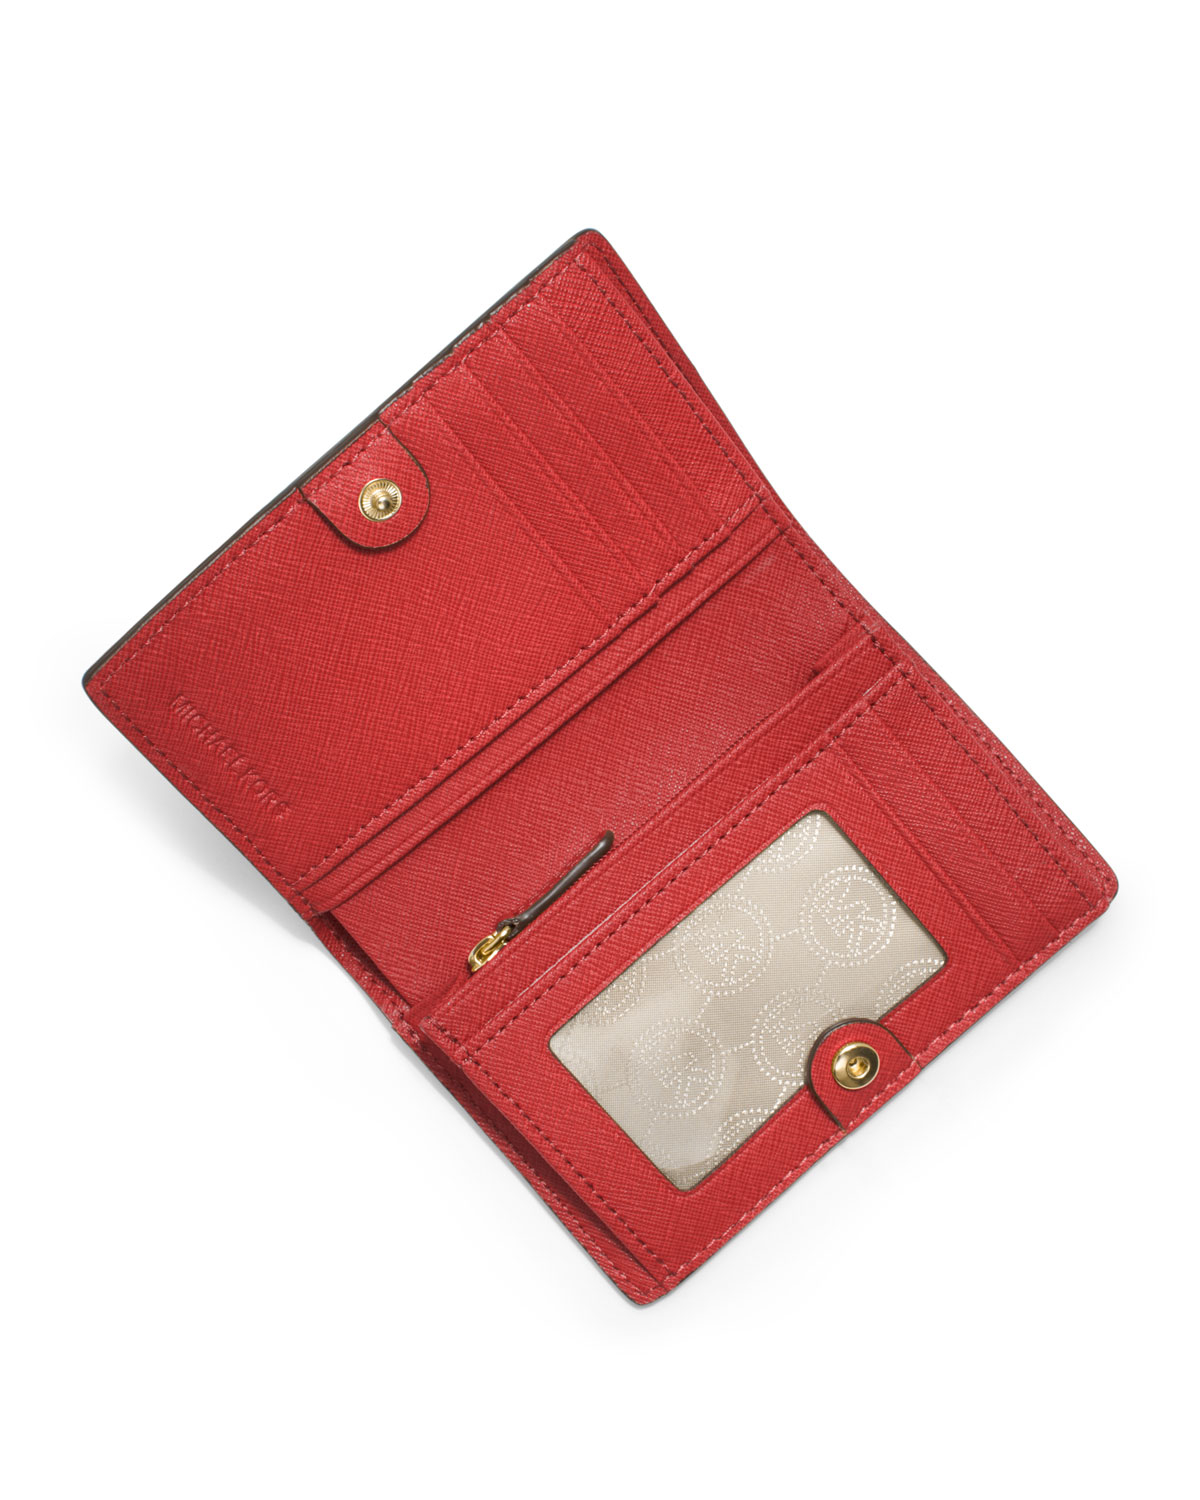 a725df8c1146 Lyst - Michael Kors Michael Medium Jet Set Travel Slim Wallet in Red